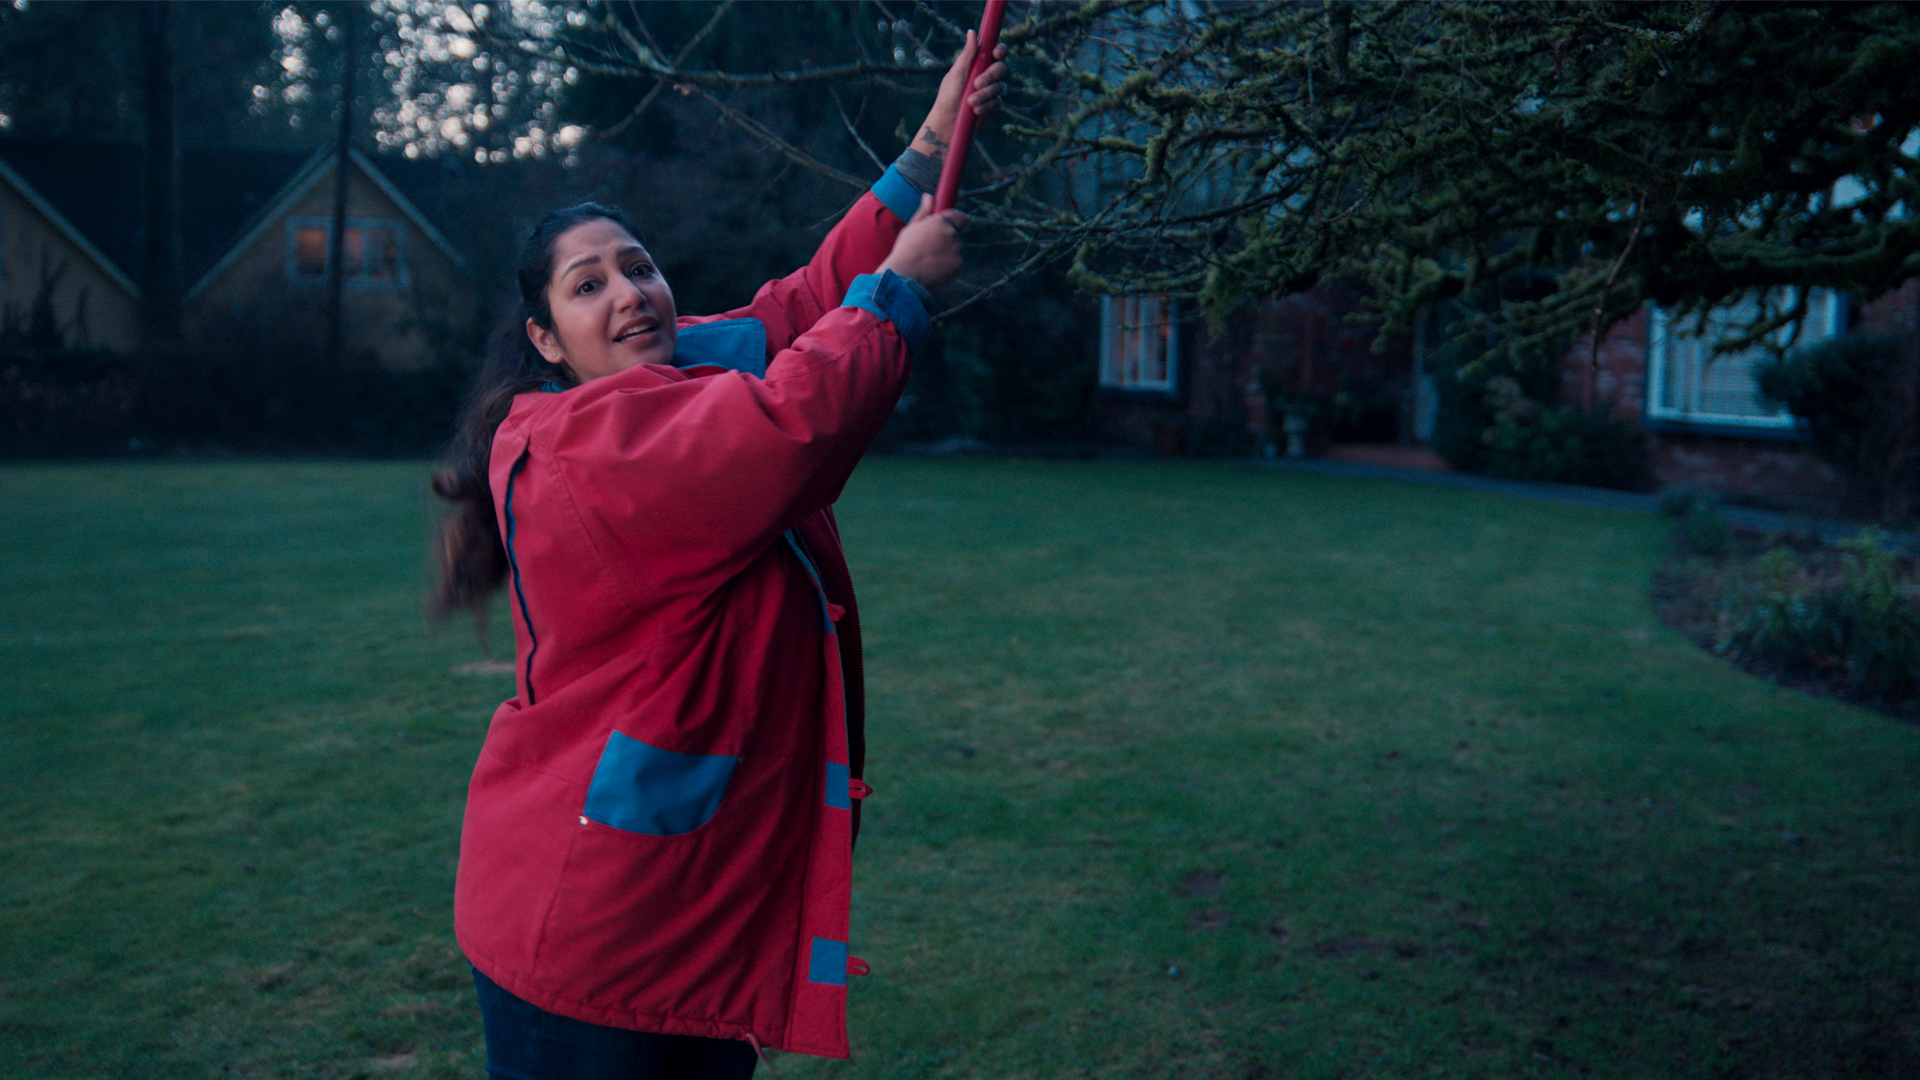 woman getting a kite down from a tree